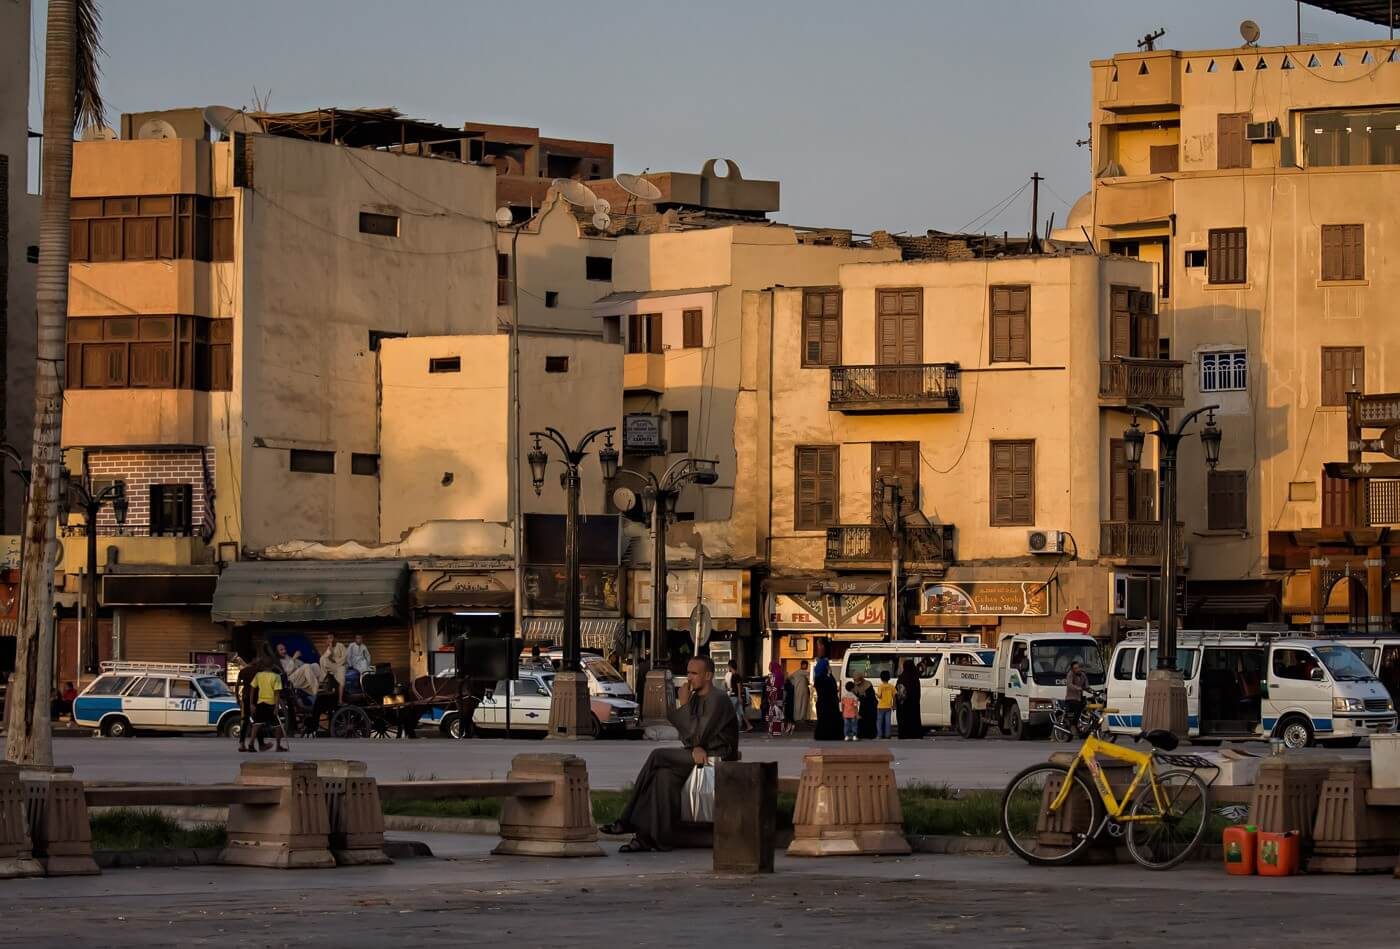 Main Square, Luxor, Egypt - Photo by Zed Sindelar of CuriousZed Photography